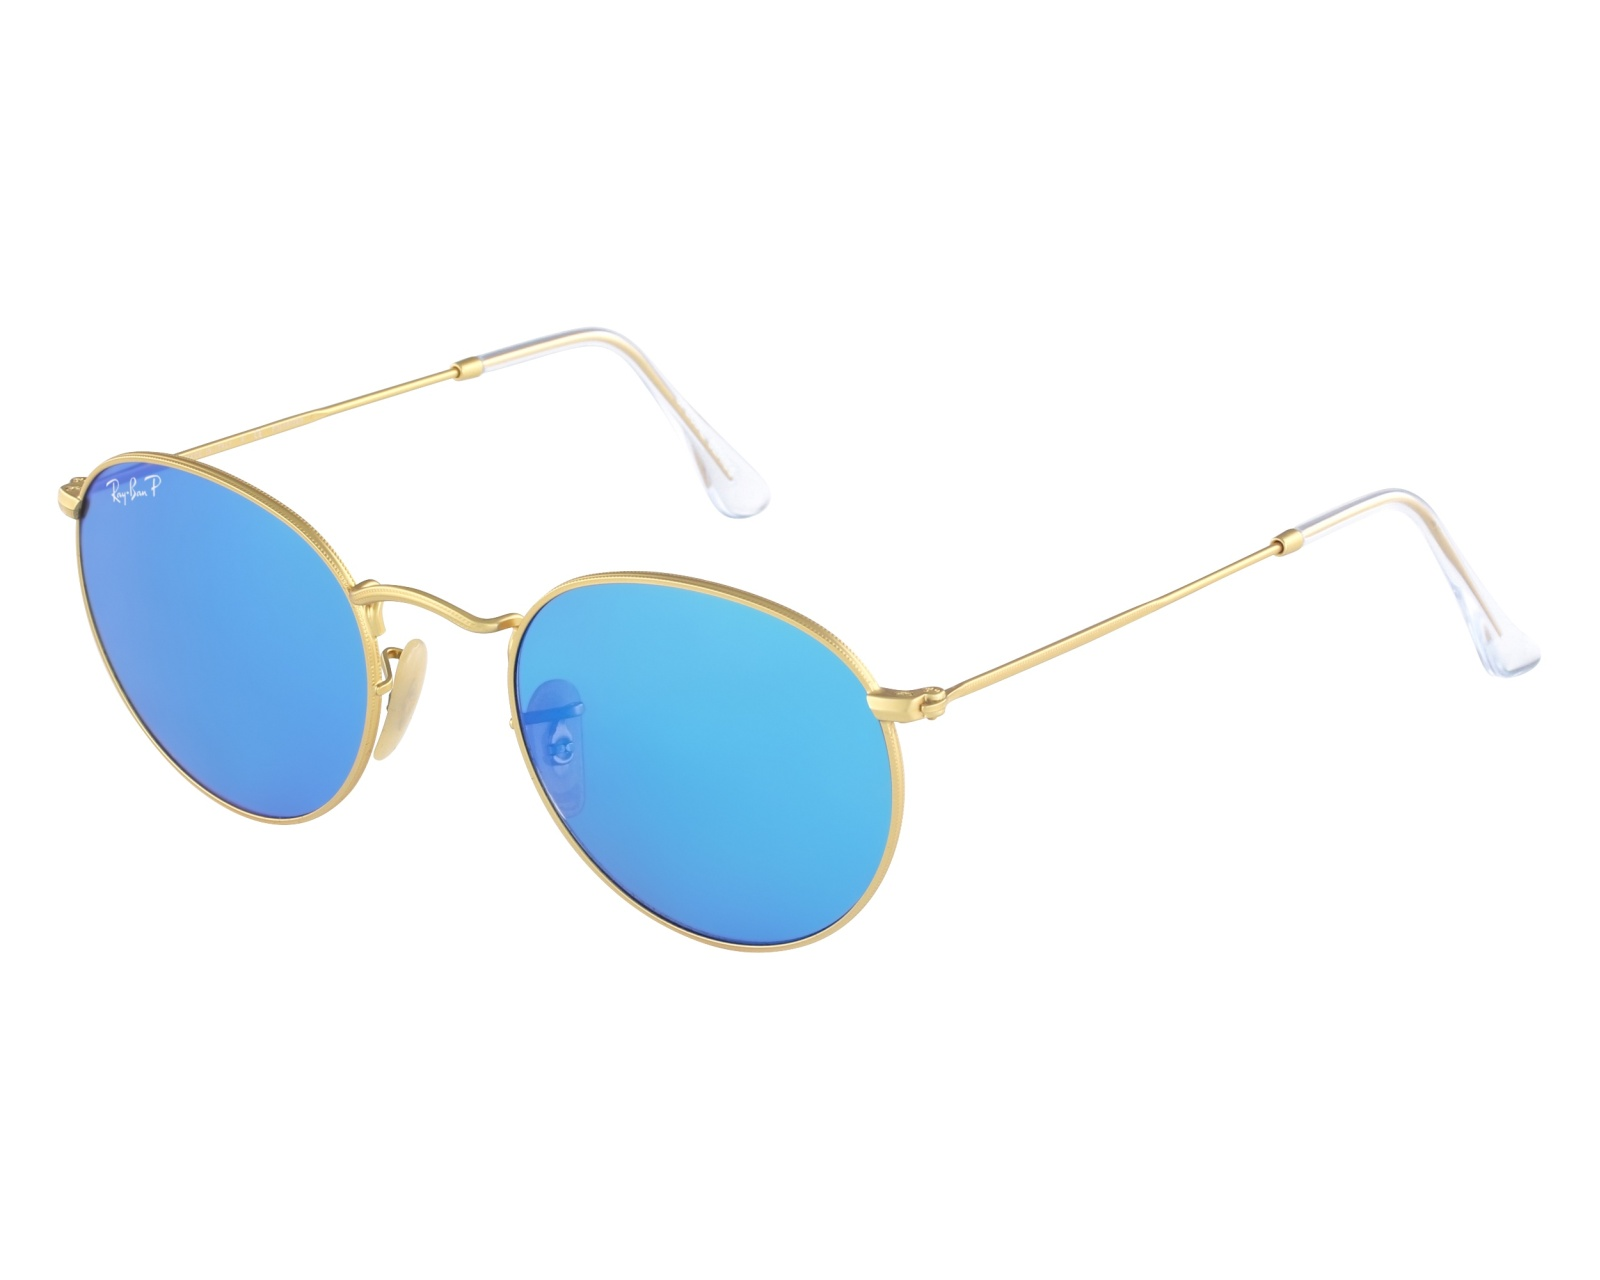 d991d8b099d Sunglasses Ray-Ban RB-3447 112 4L 50-21 Gold front view